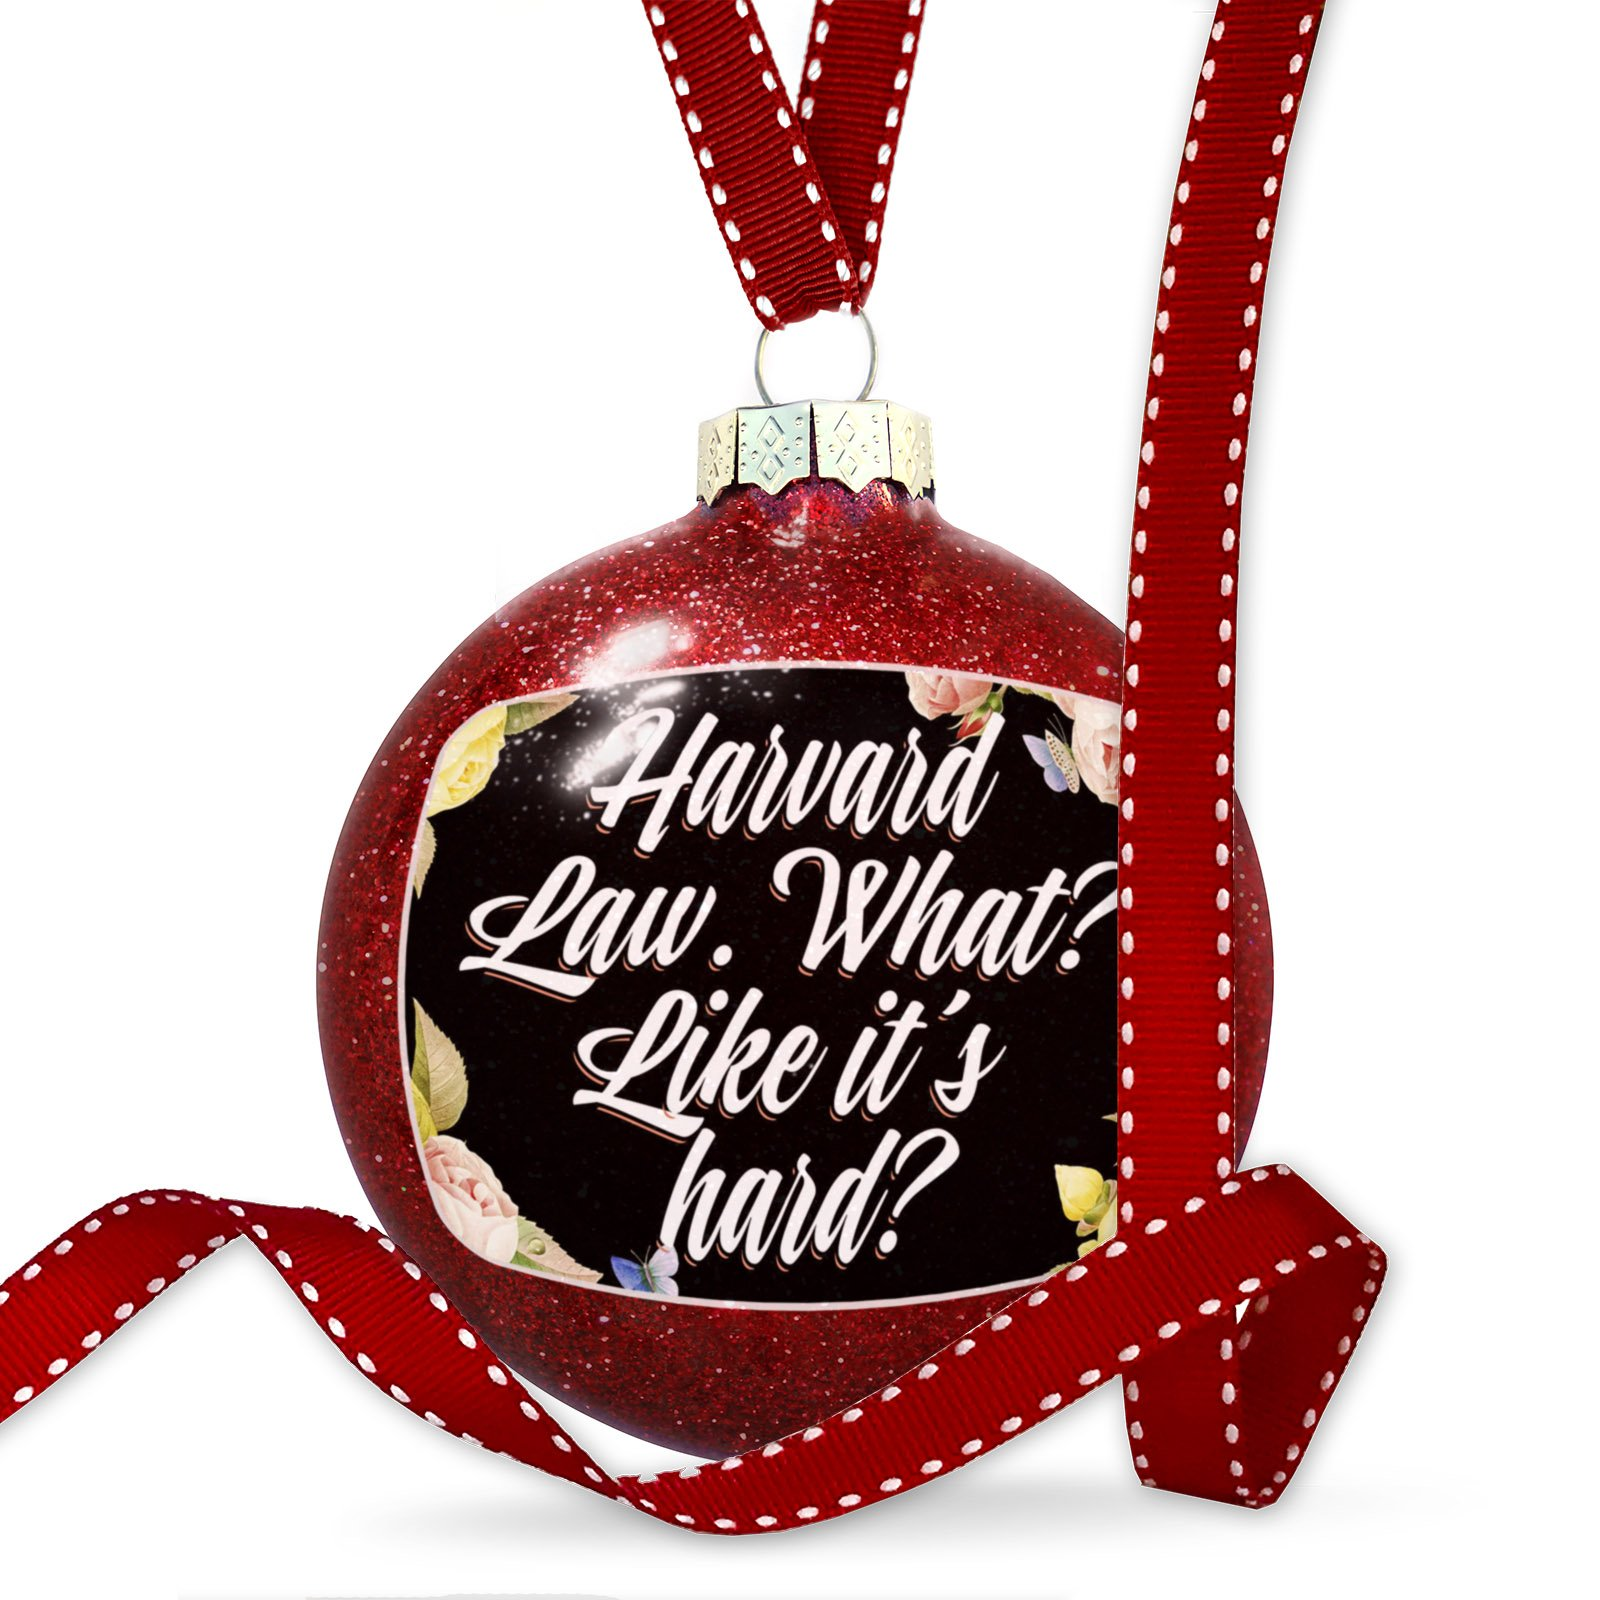 Christmas Decoration Floral Border Harvard Law. What? Like it's hard? Ornament